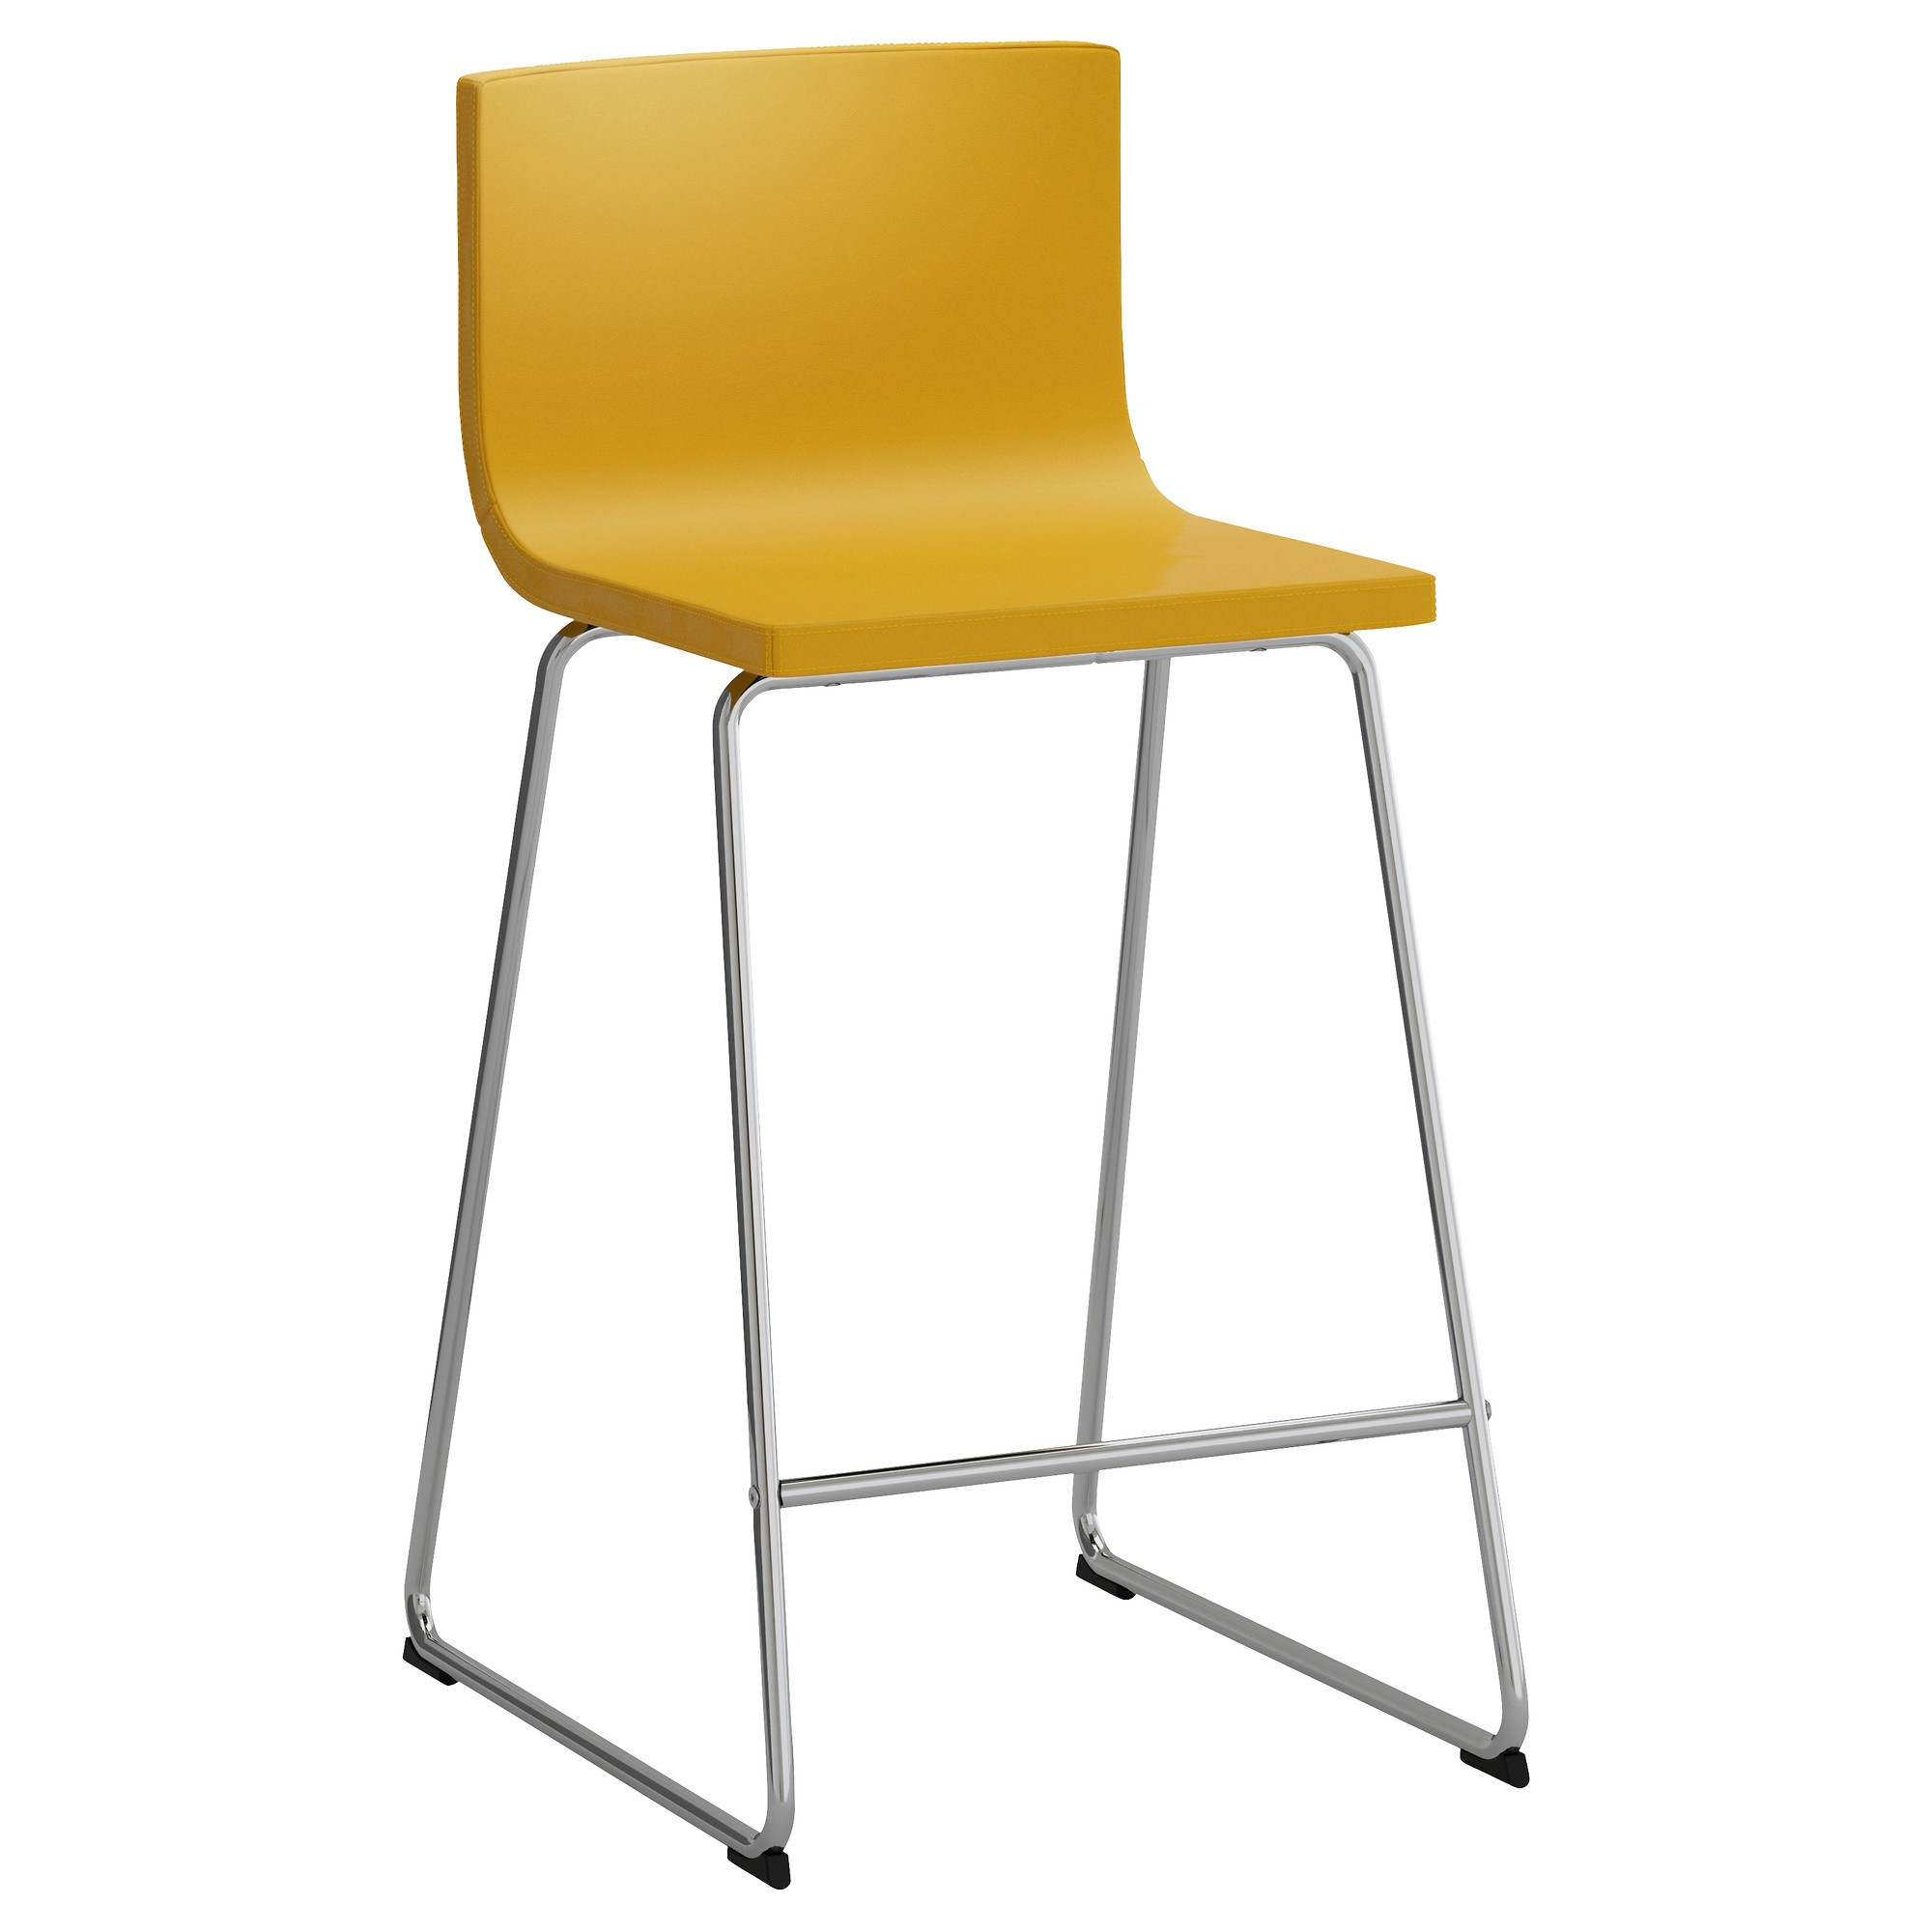 Chaise haute tabouret de bar ikea chaise id es de for Chaise tabouret ikea